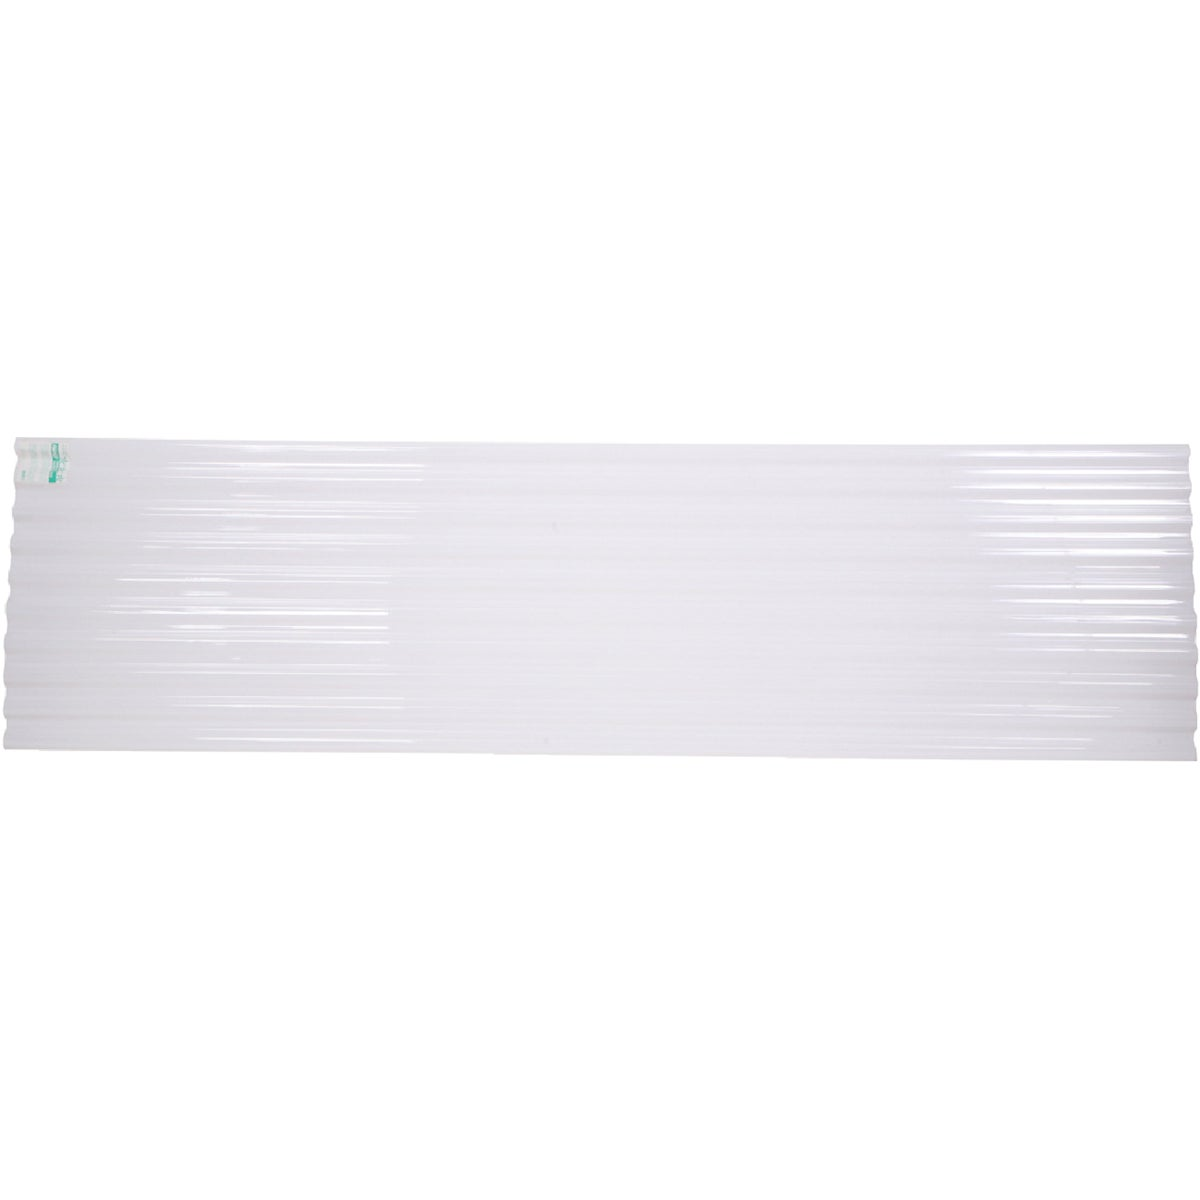 8' WHT CORRUGATED PANEL - 141318 by Ofic North America